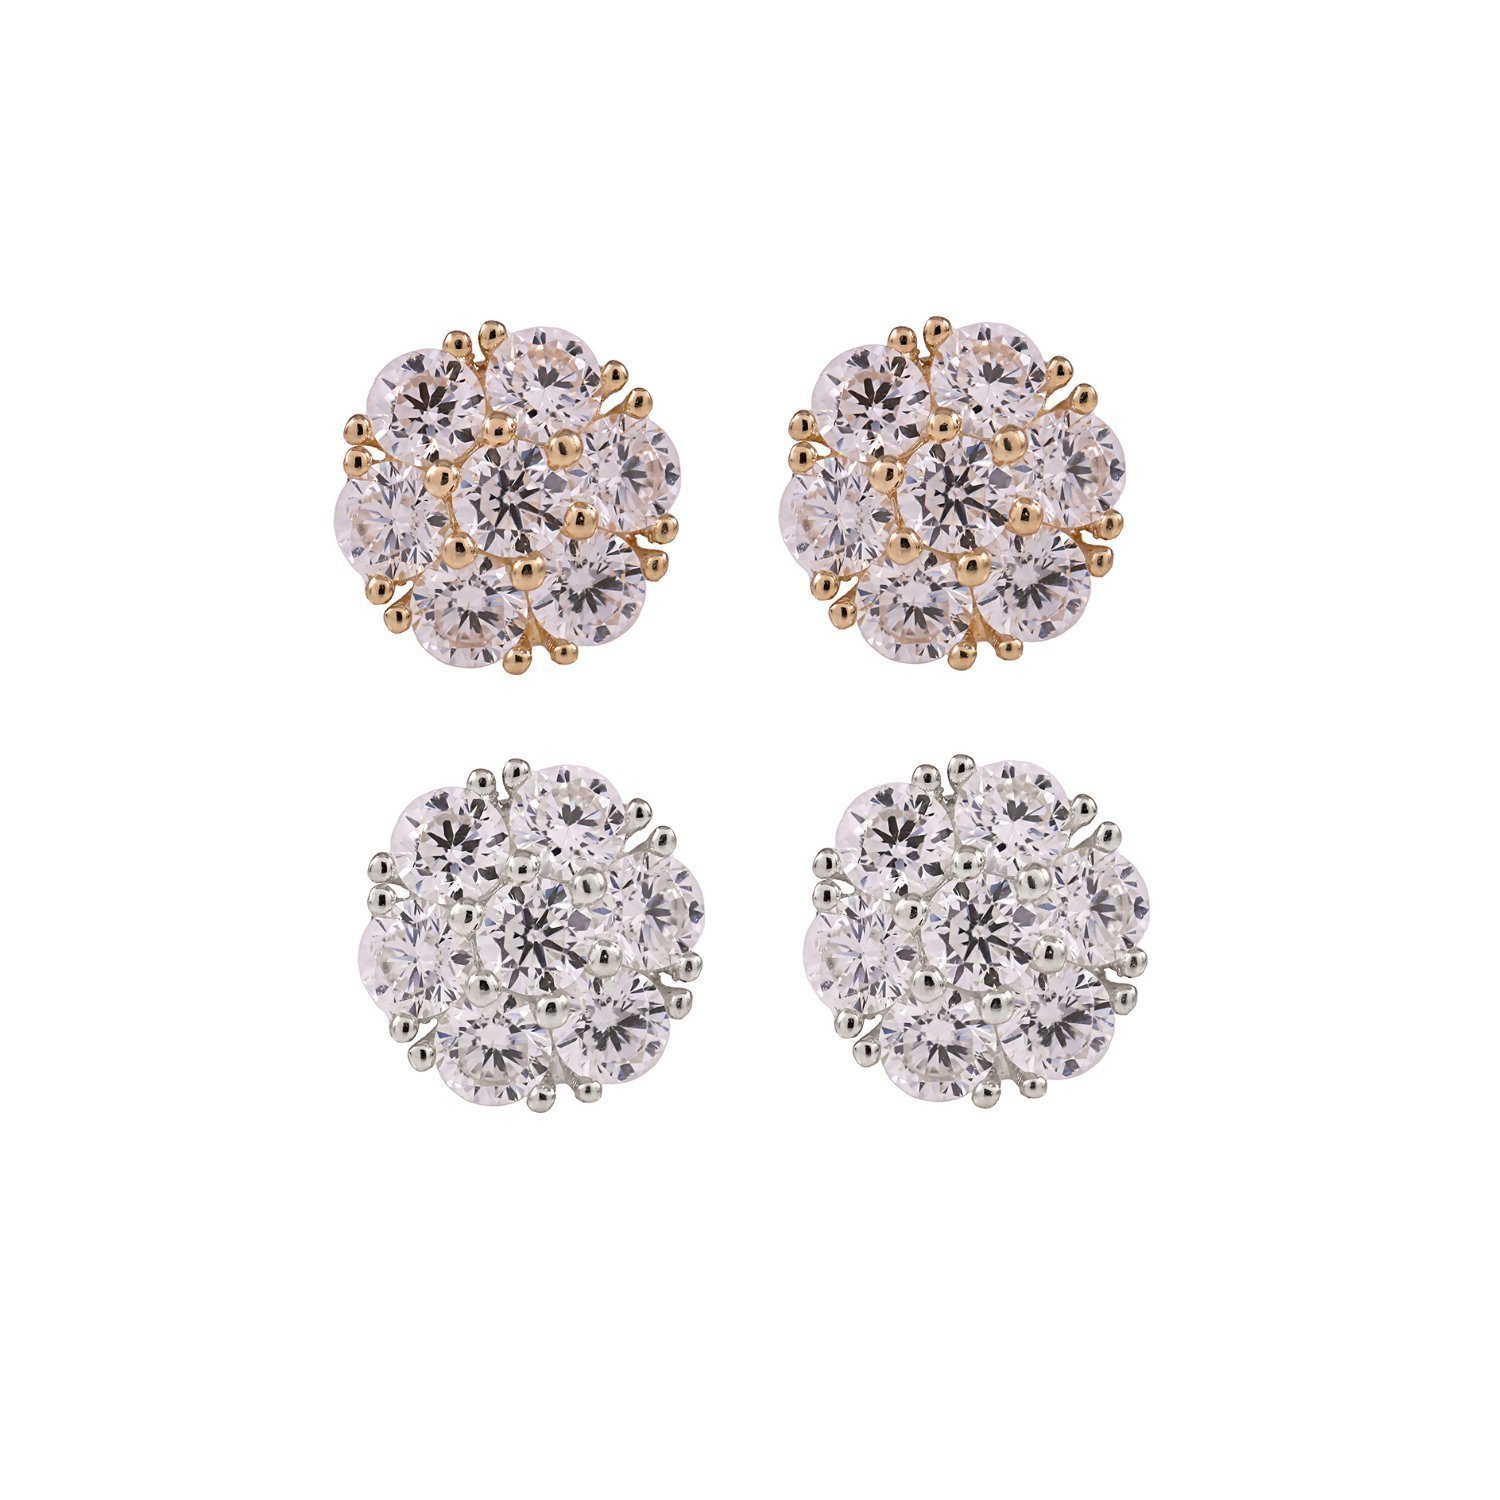 BallucciToosi Cluster Earrings -14k Real Solid White Yellow Gold - Cubic Zirconia Flower Earring Polished